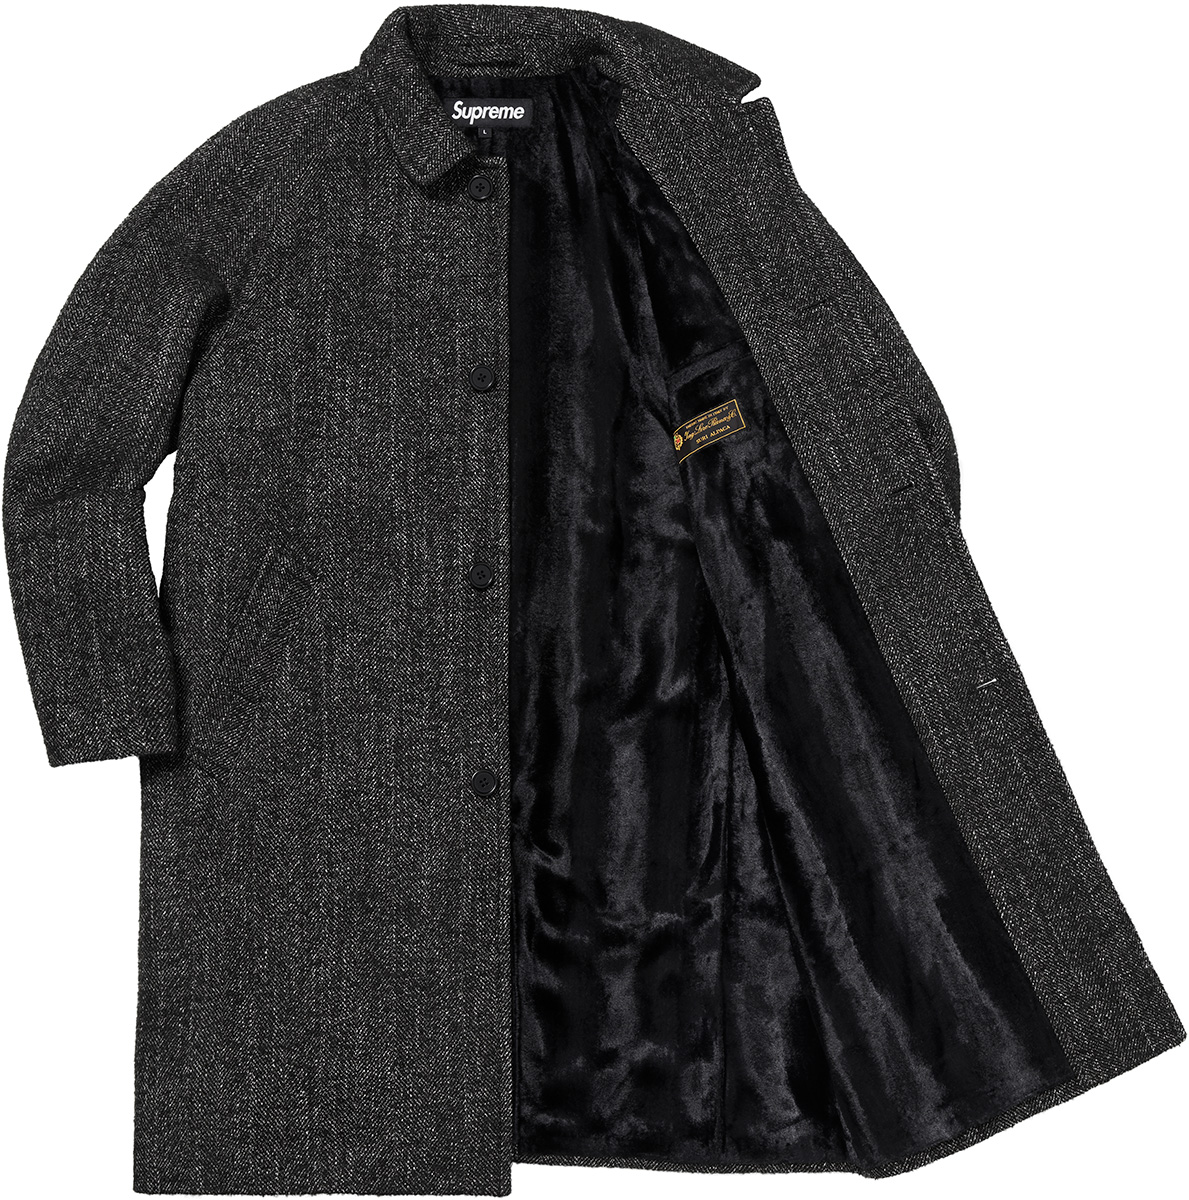 supreme-18aw-fall-winter-wool-trench-coat